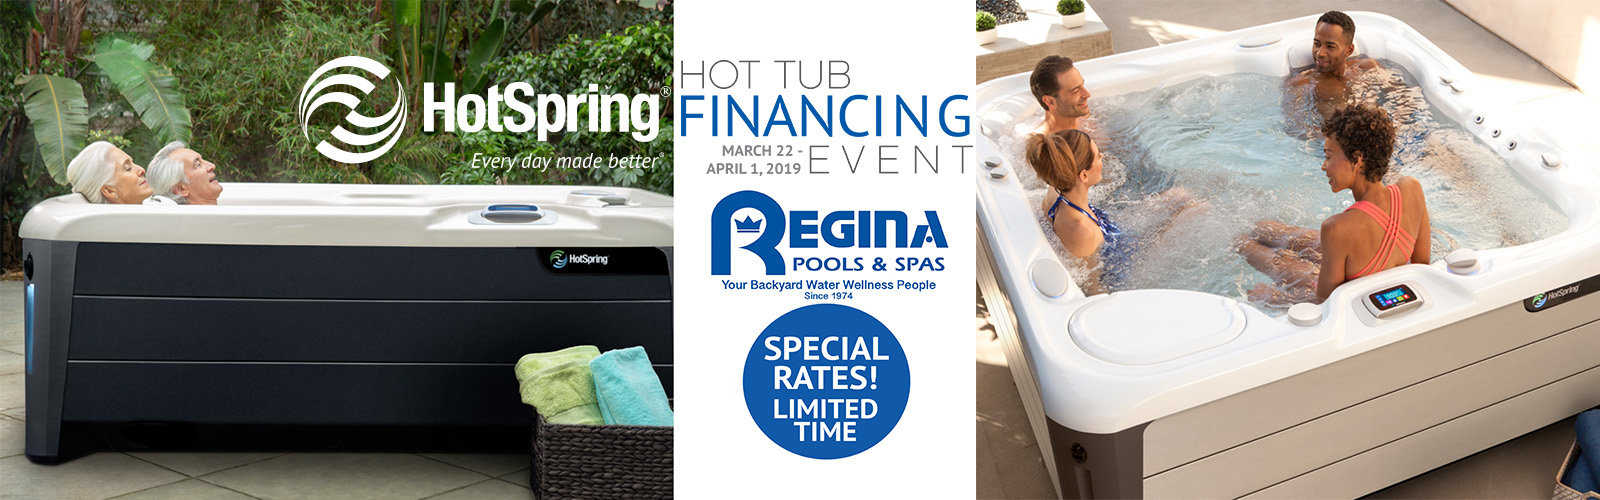 Q1 Web page - Regina Pools & Spas